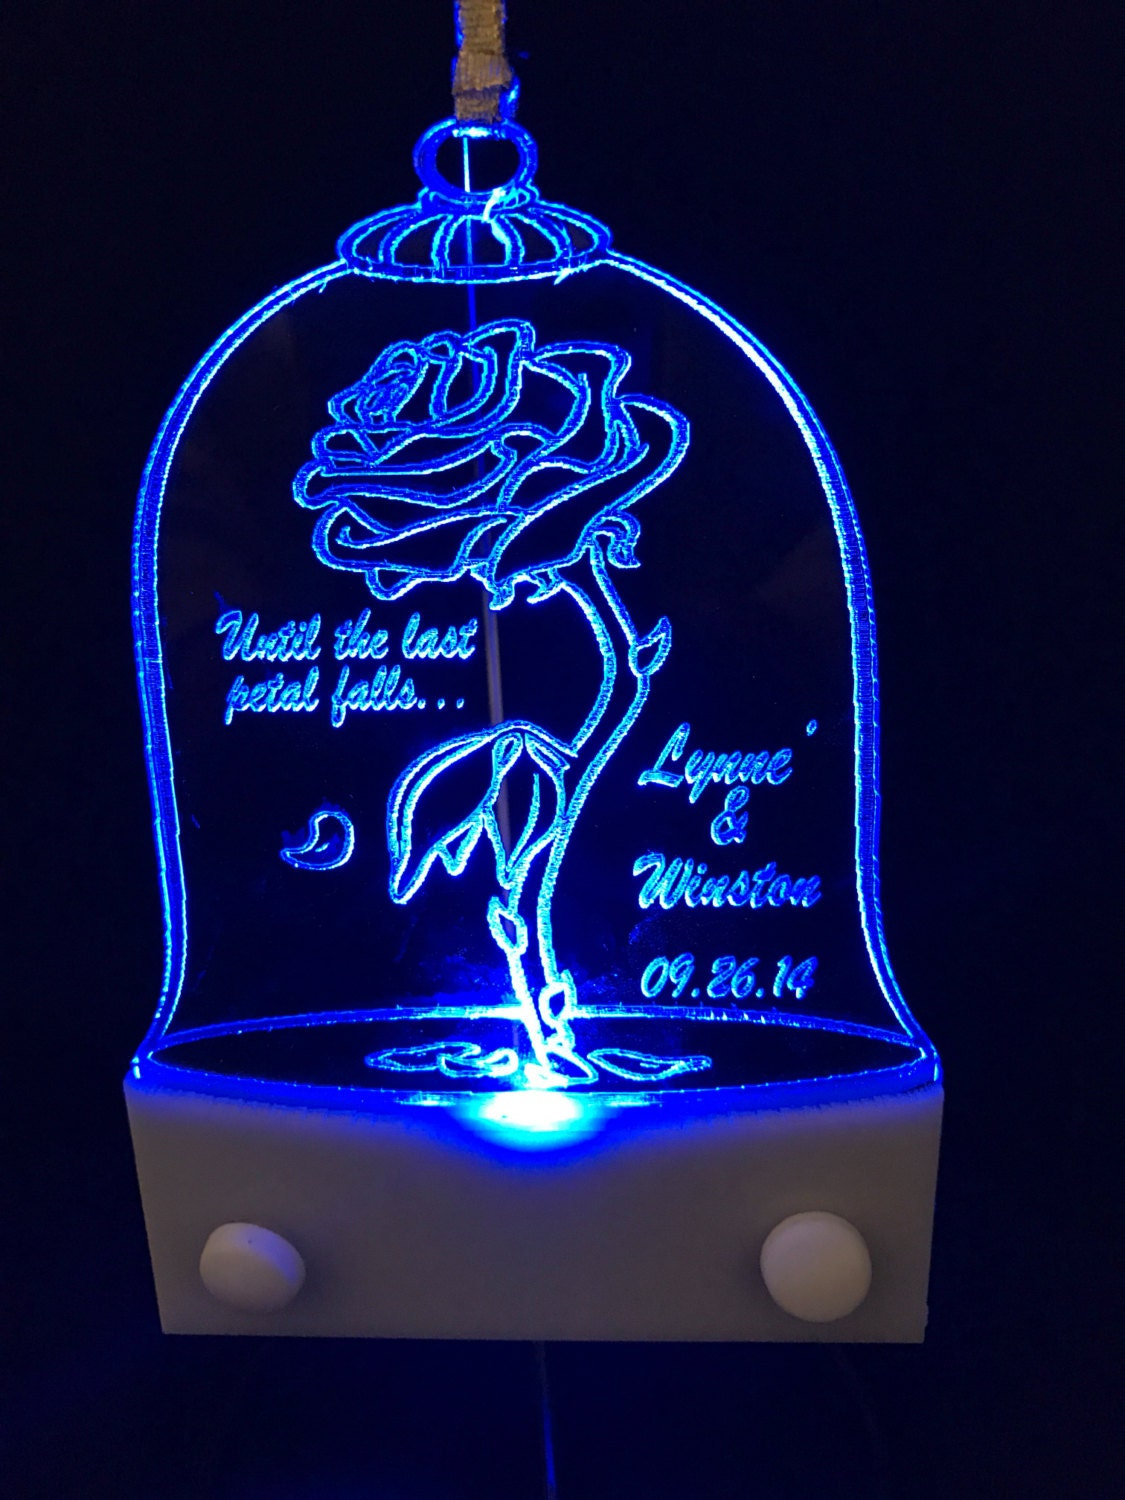 Beauty and the beast rose christmas ornament lighted